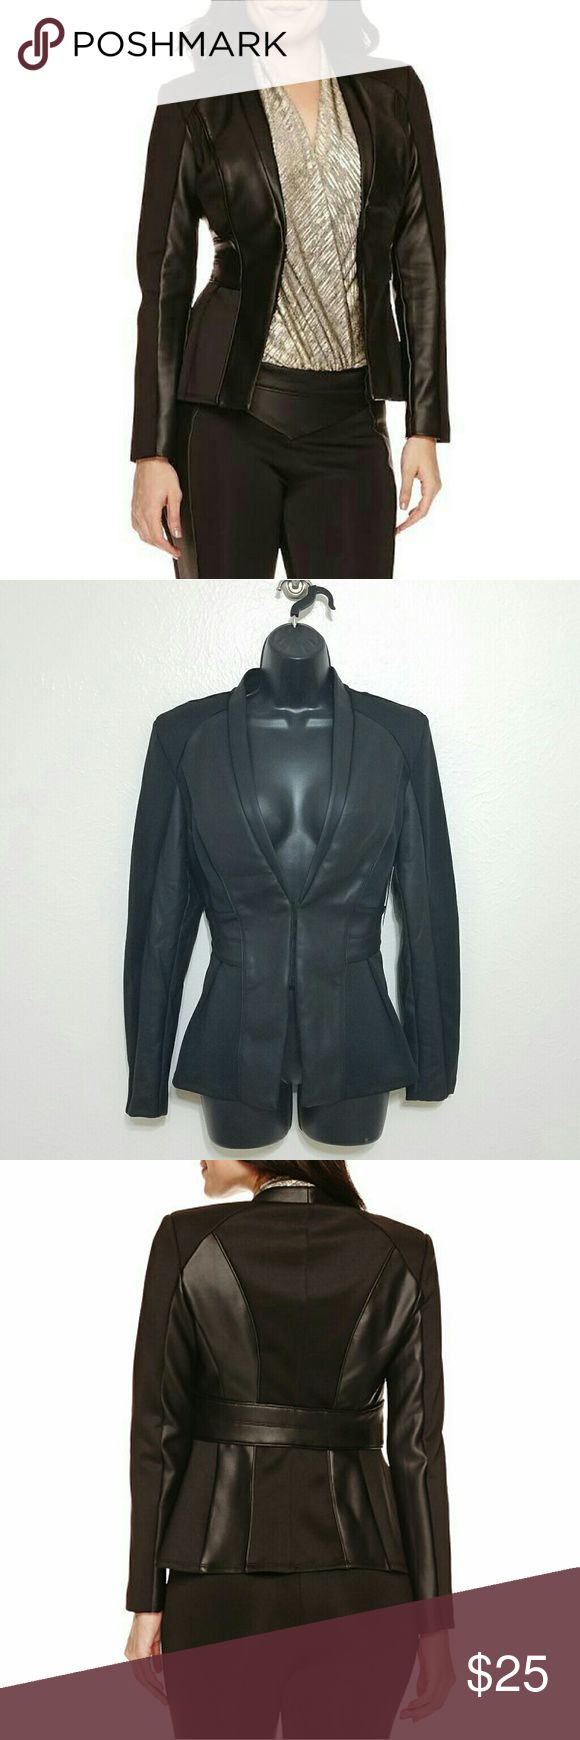 "BISOU BISOU Seamed Scuba/Leather Jacket NWT!  BISOU BISOU  Size M  Scuba material & faux leather seams make these jacket chic & sporty. Stretchy & comfortable, defined waist creates hourglass shape.  black polyester/spandex  16"" across waist without stretching fabric  25"" shoulder to hem Bisou Bisou Jackets & Coats"